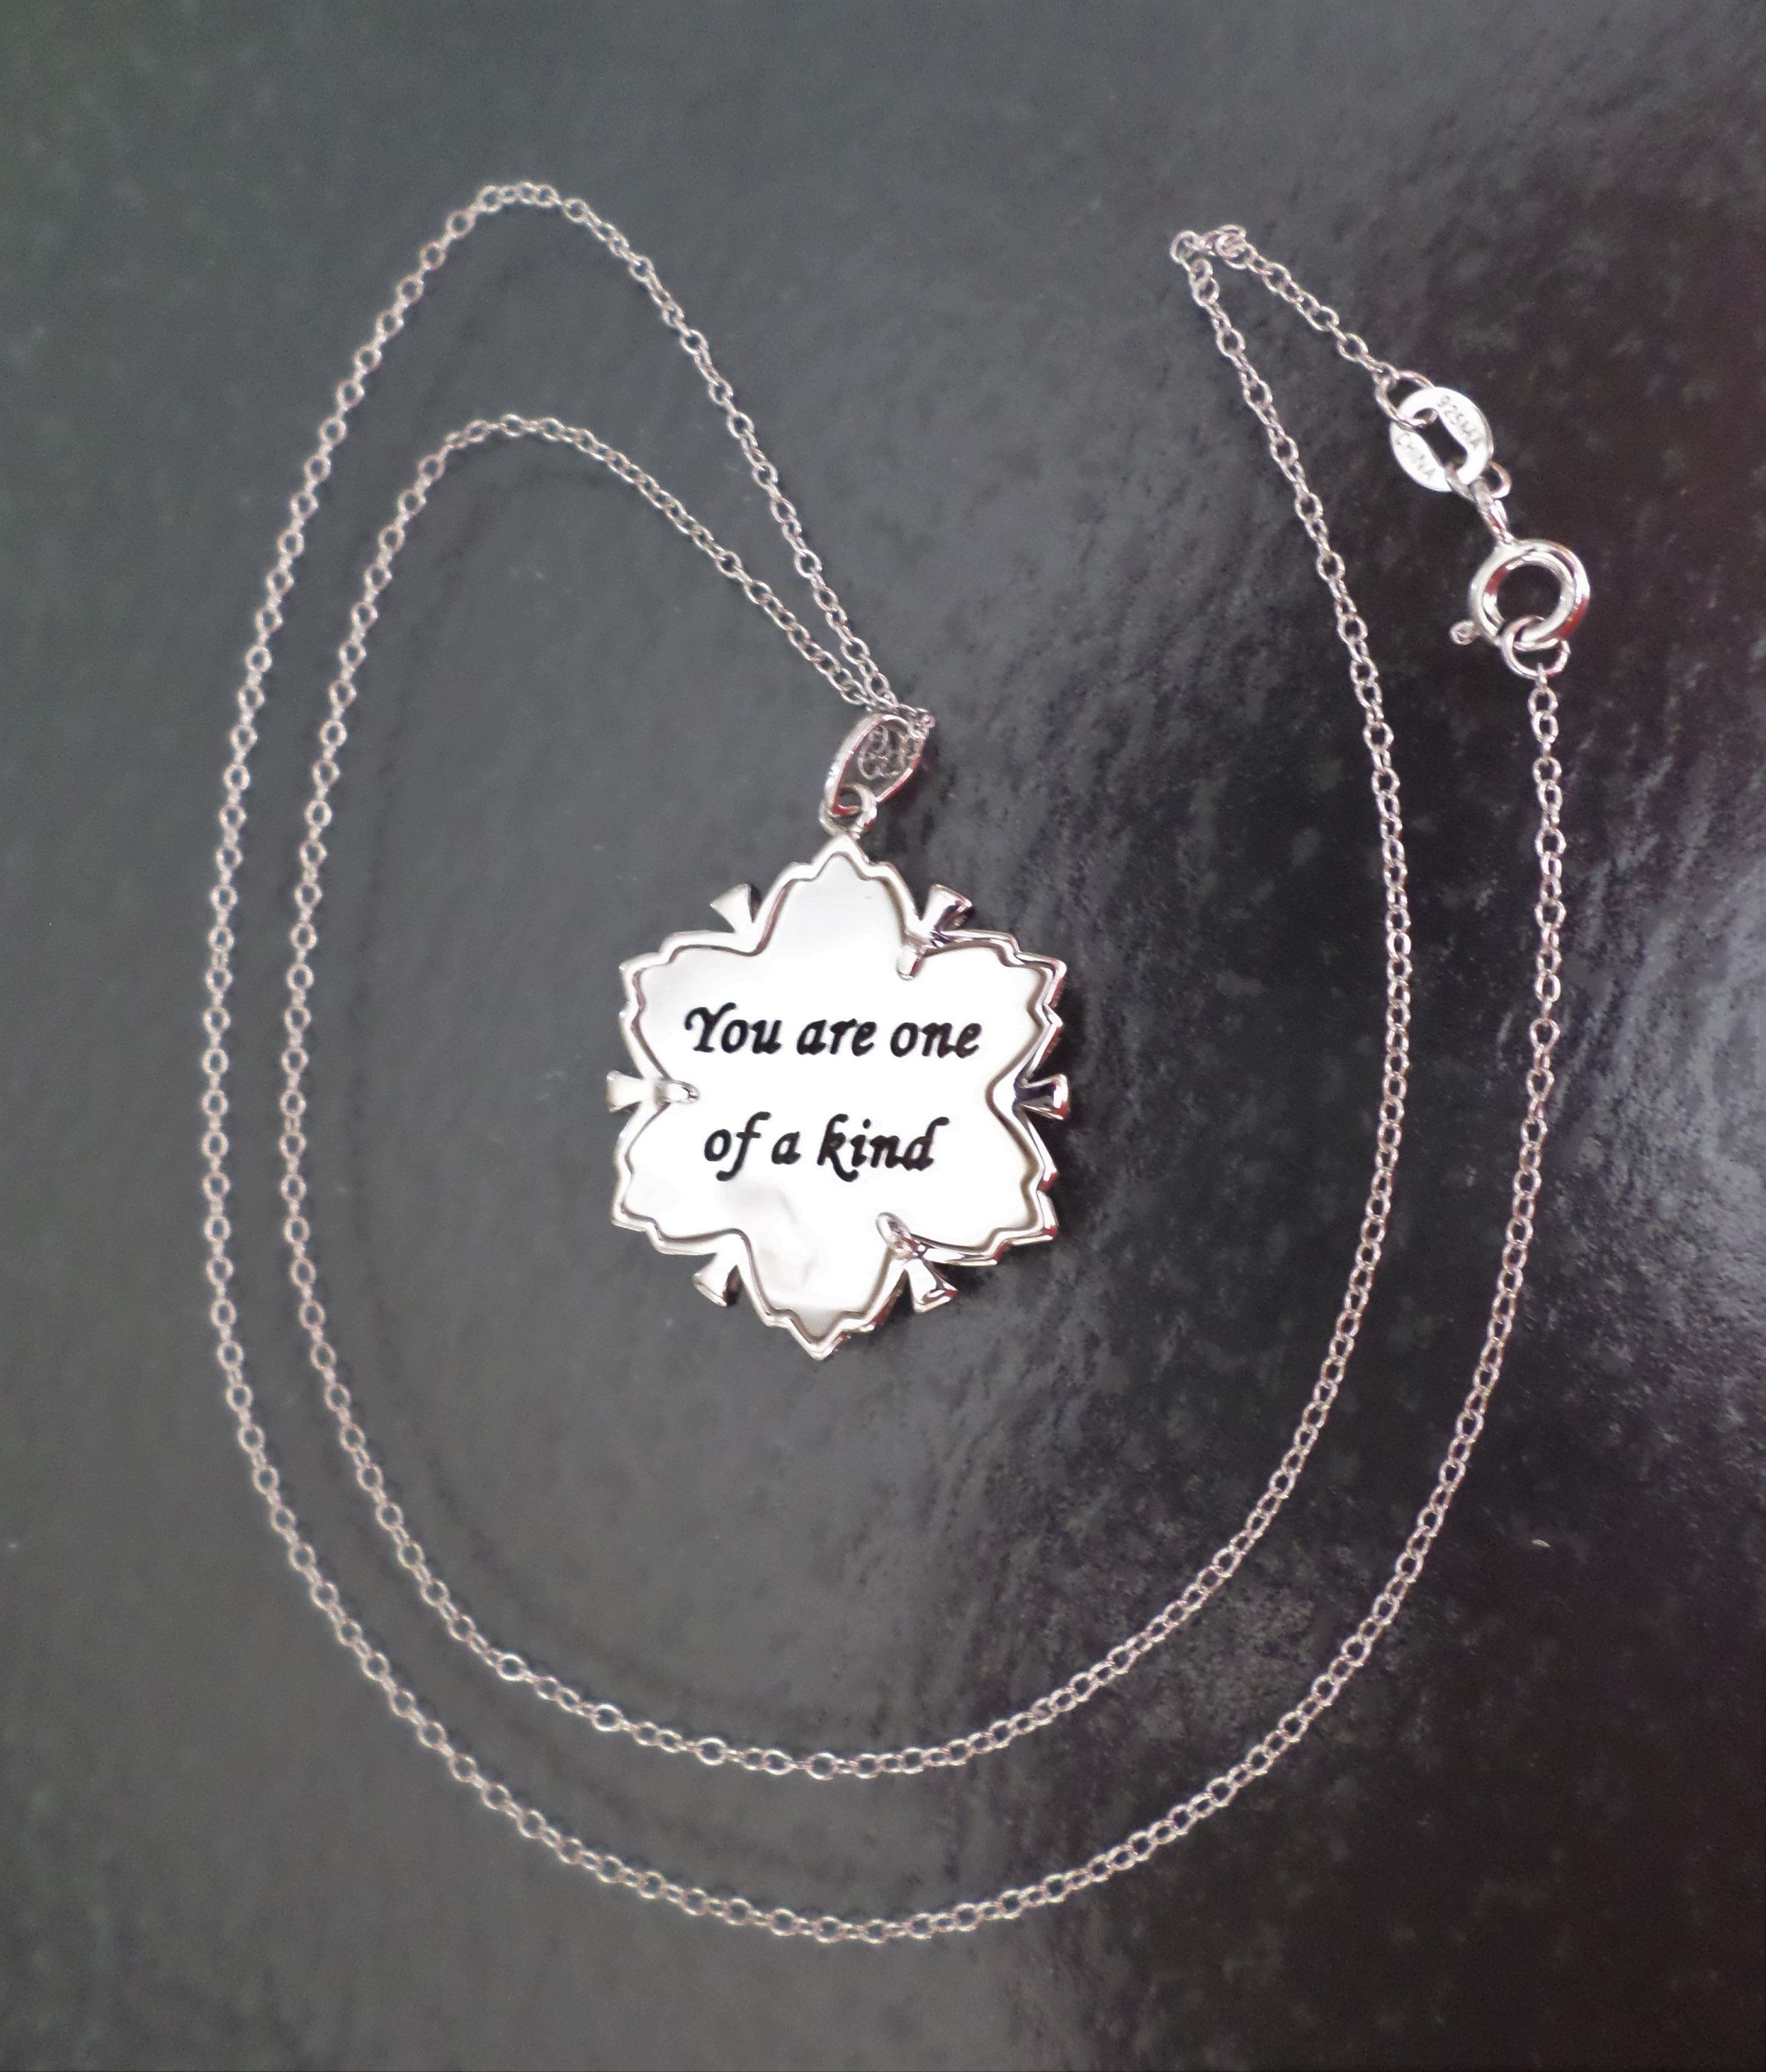 Sterling silver 925 stamped made in china ma signed inspirational sterling silver 925 stamped made in china ma signed inspirational pendant necklace mozeypictures Choice Image